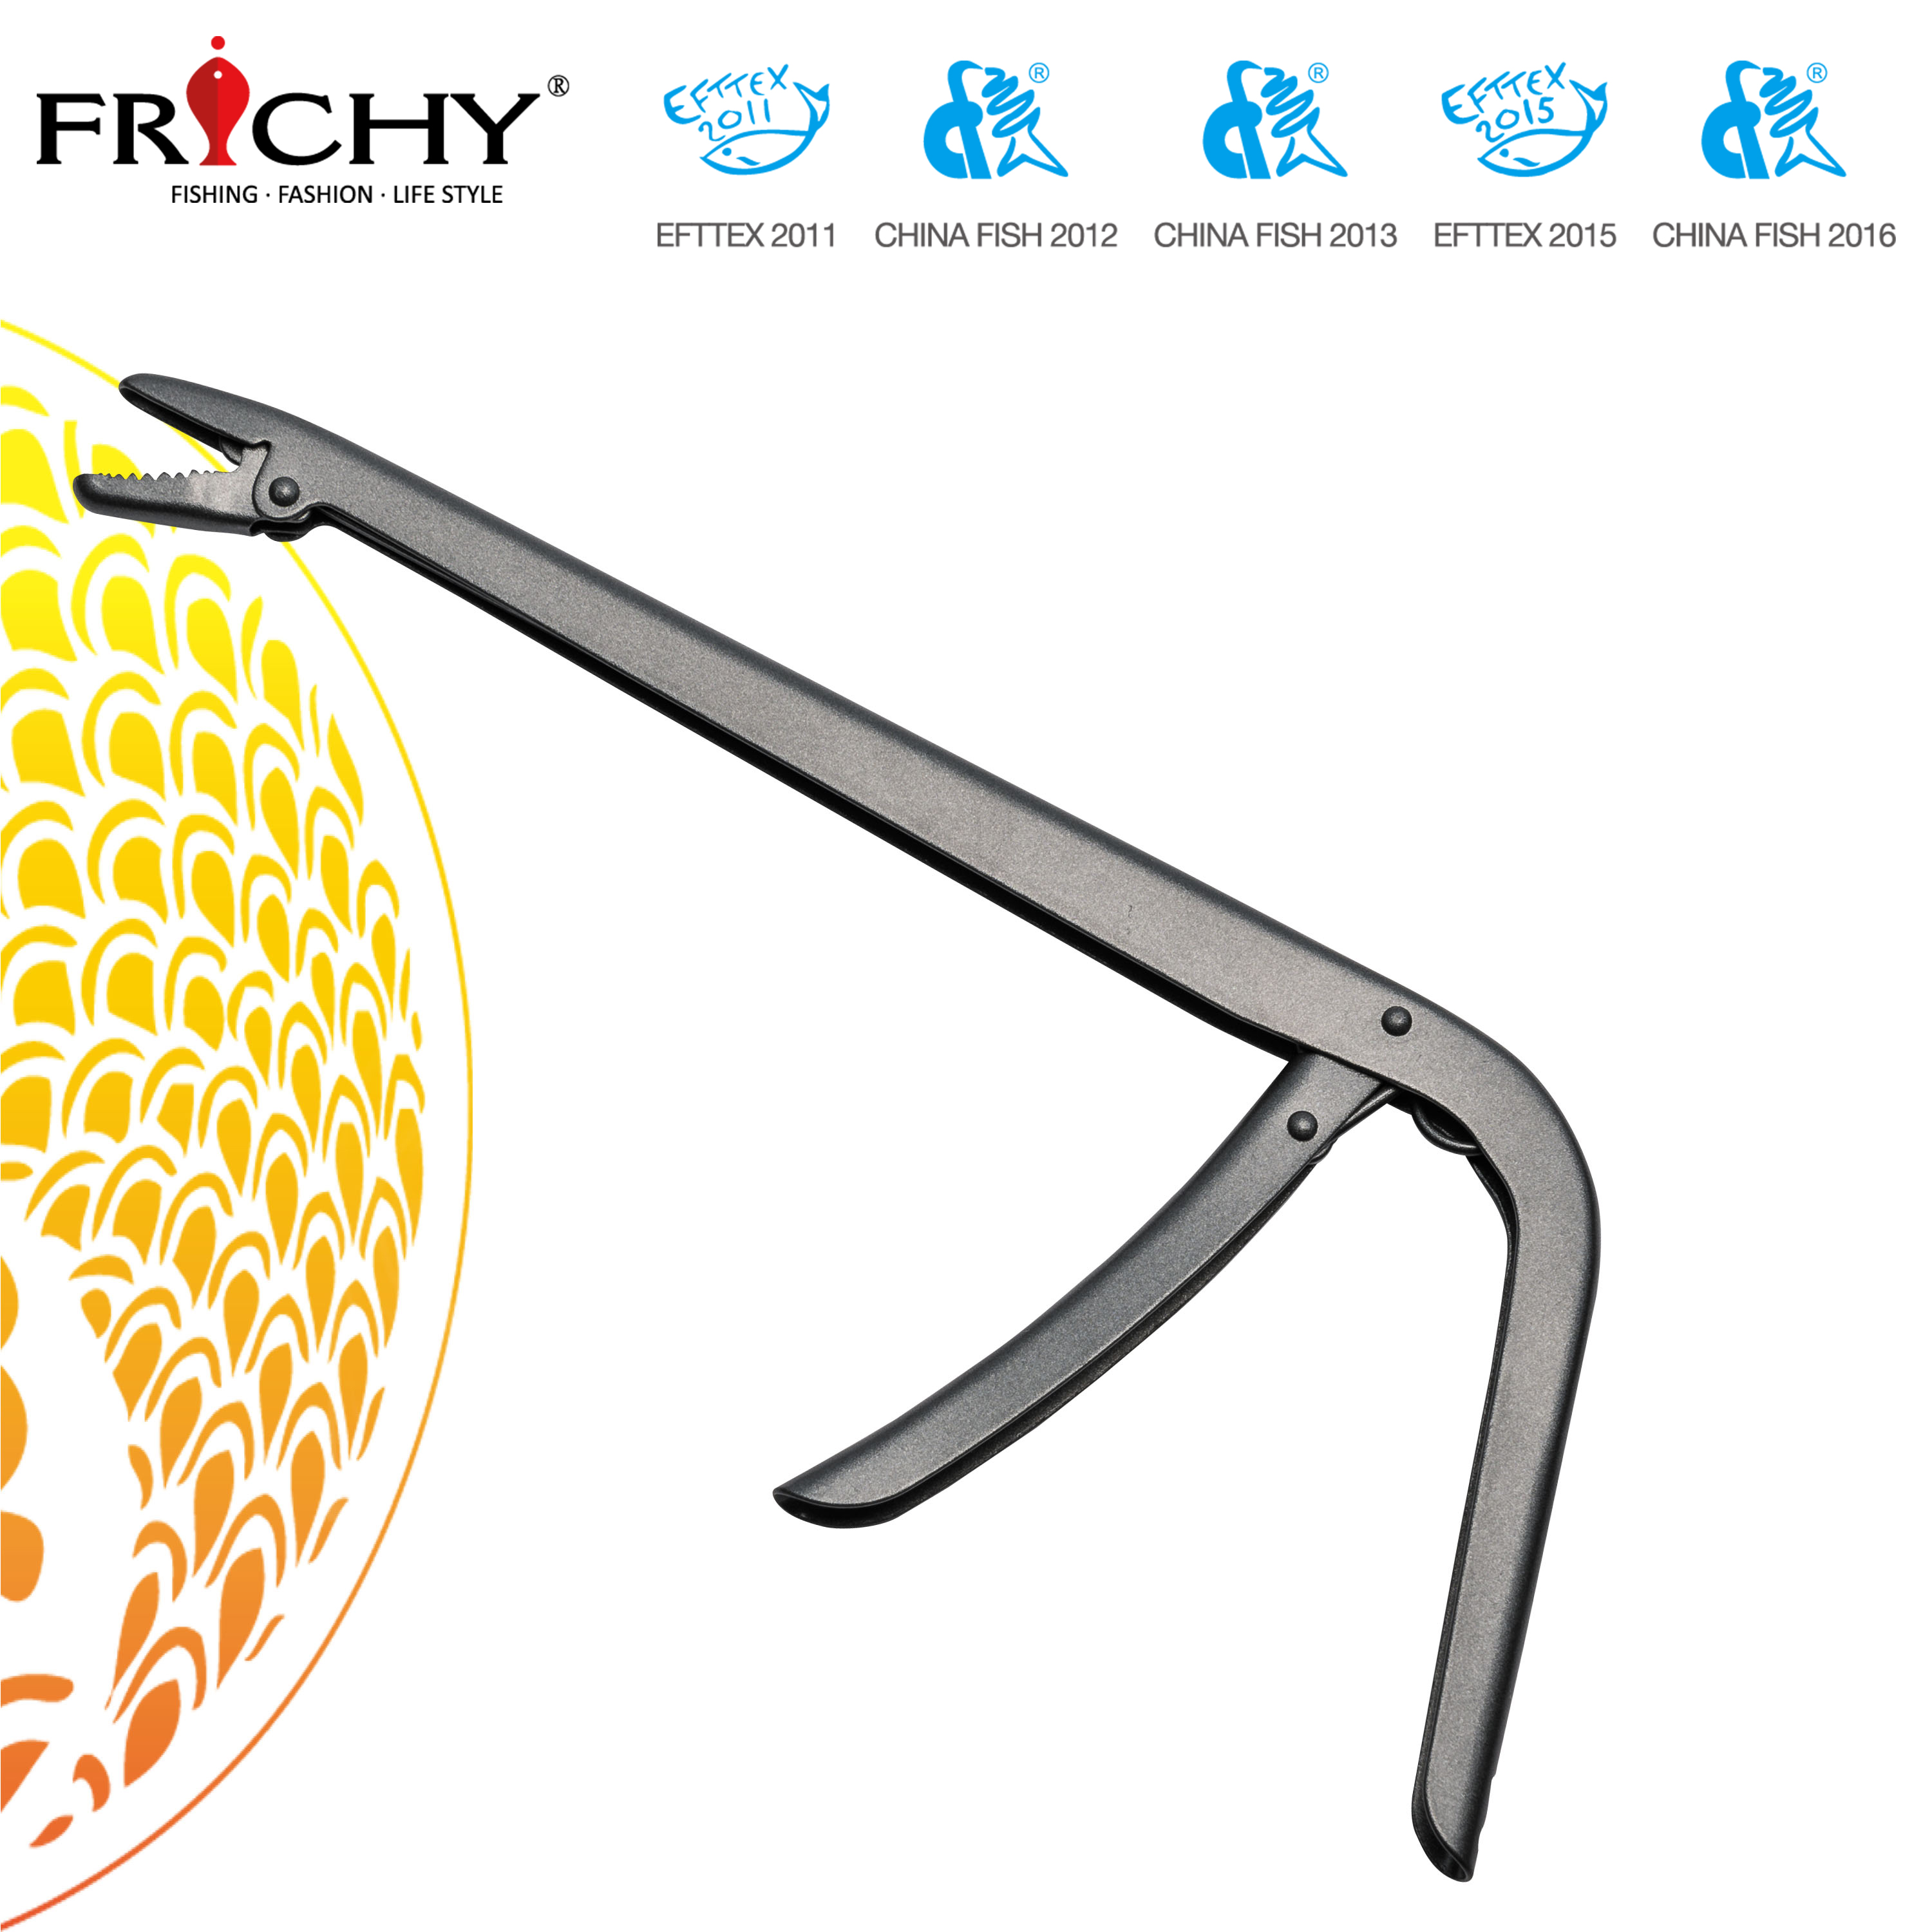 X61 Fishing Accessory Fishing Hook Remover Tools